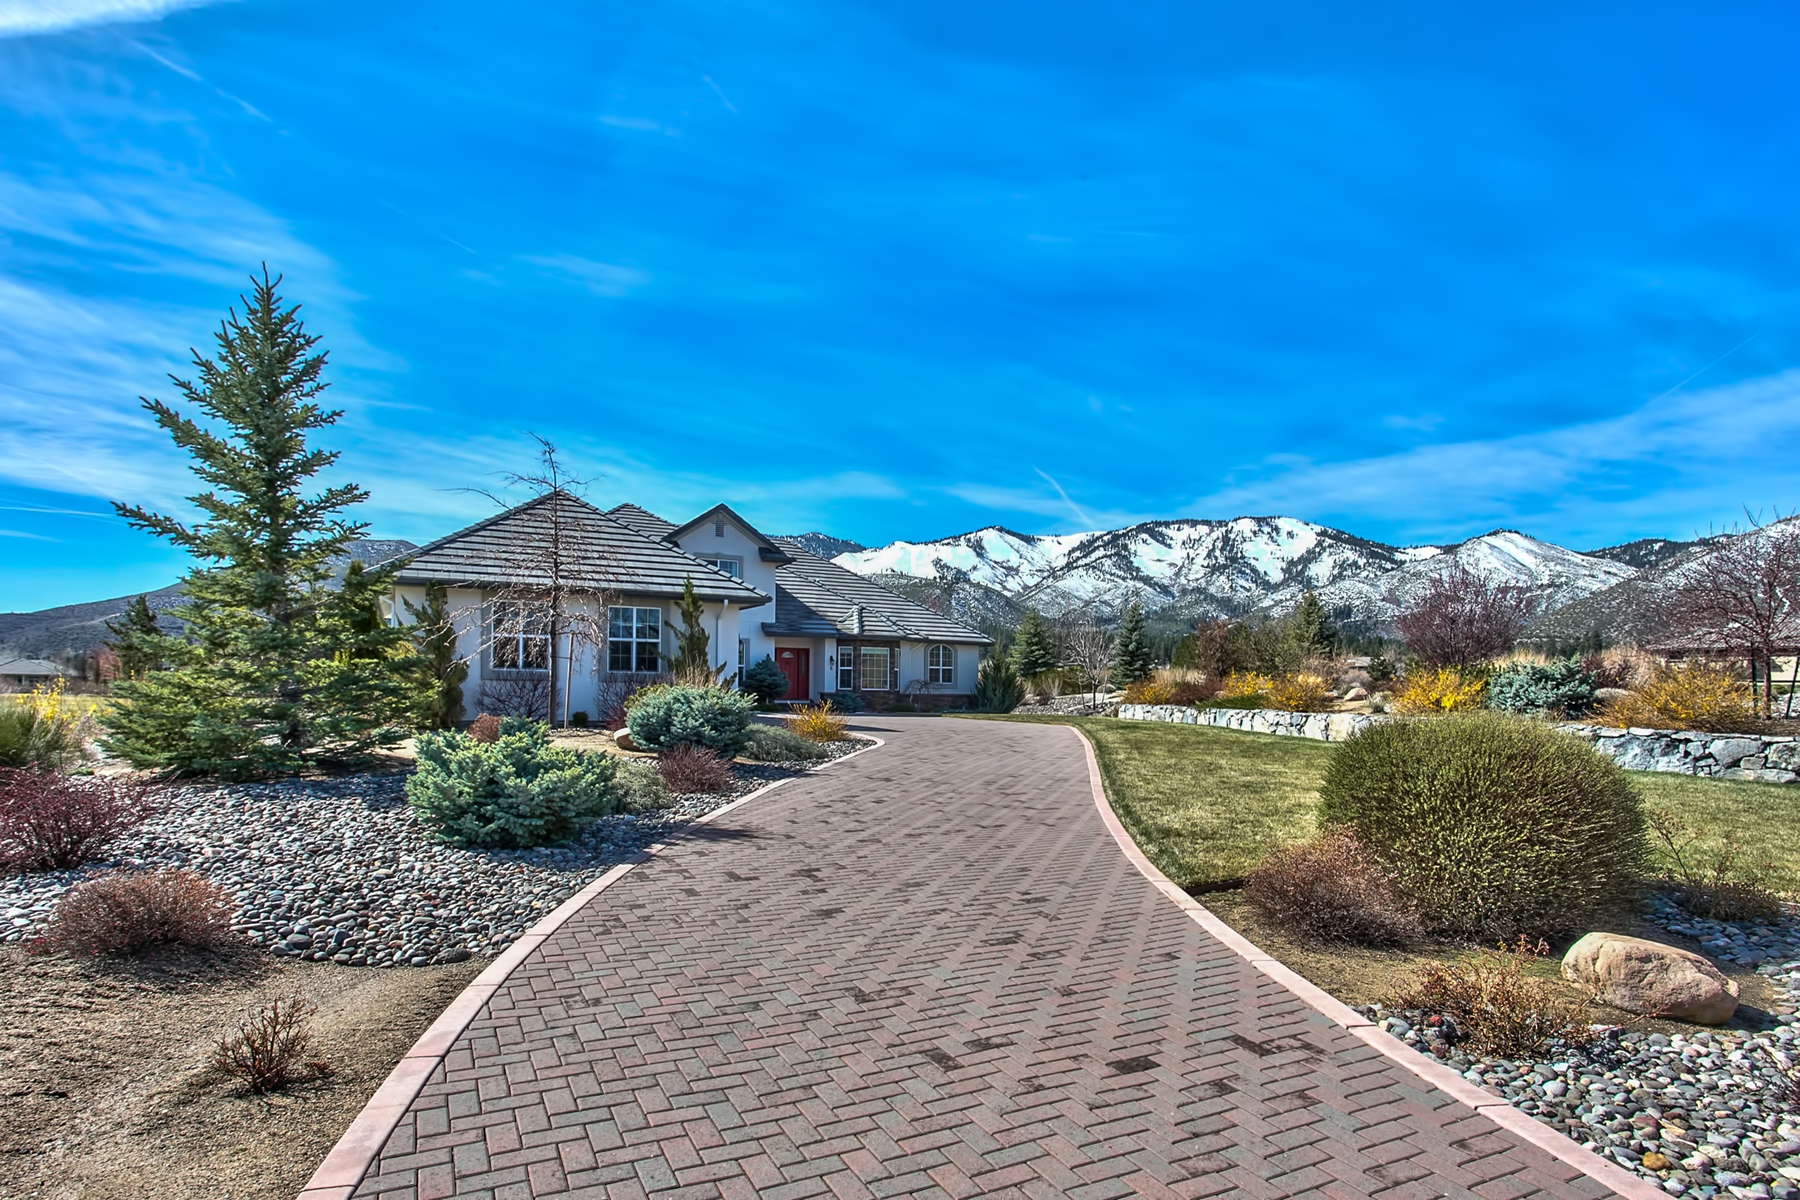 Single Family Home for Sale at 6 Willow Bend Lane 6 Willow Bend Lane Washoe Valley, Nevada, 89704 United States